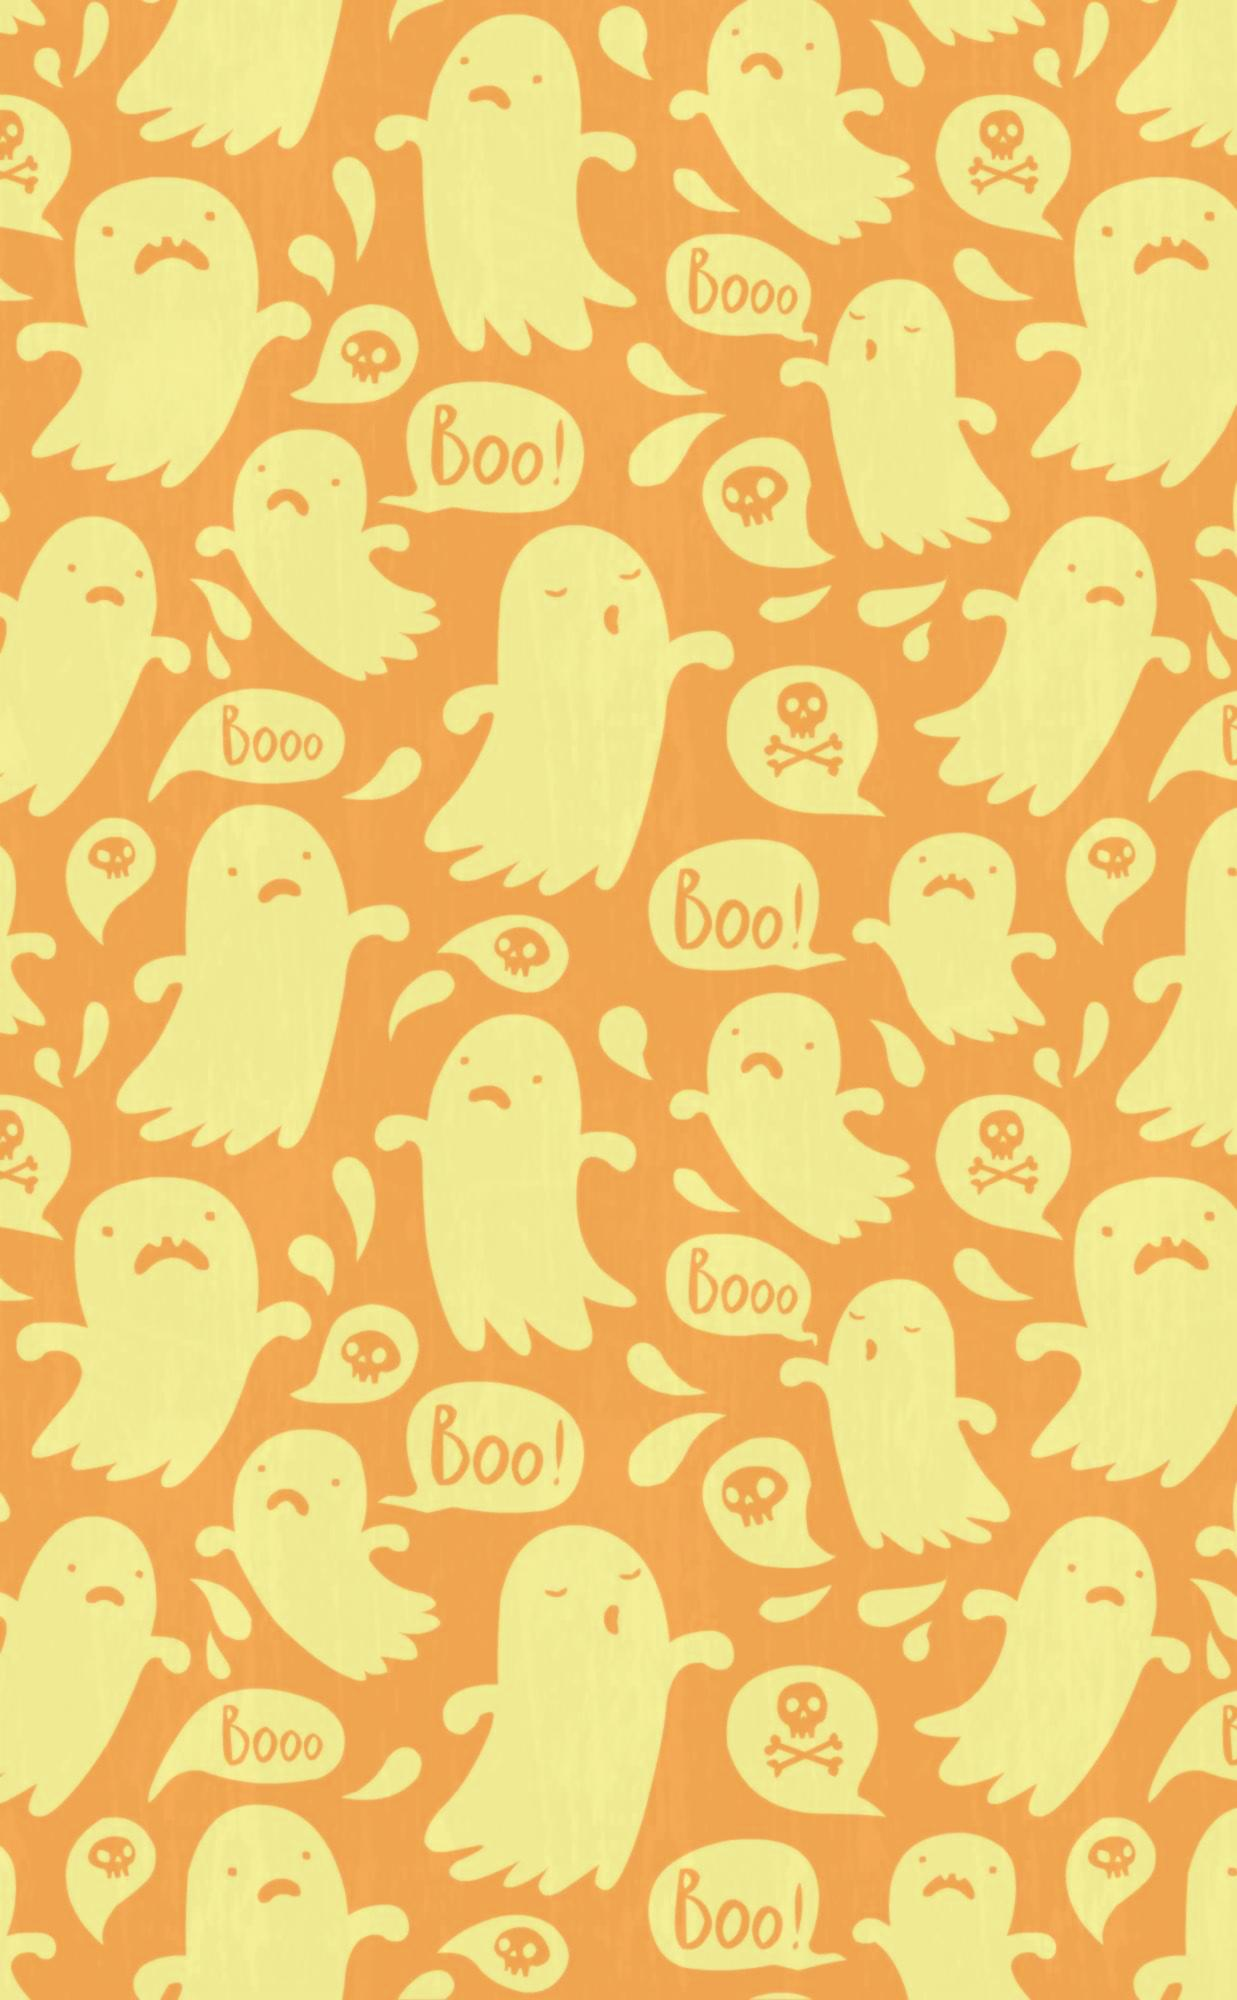 Halloween Iphone Wallpaper Tumblr Wallpapers From Festival